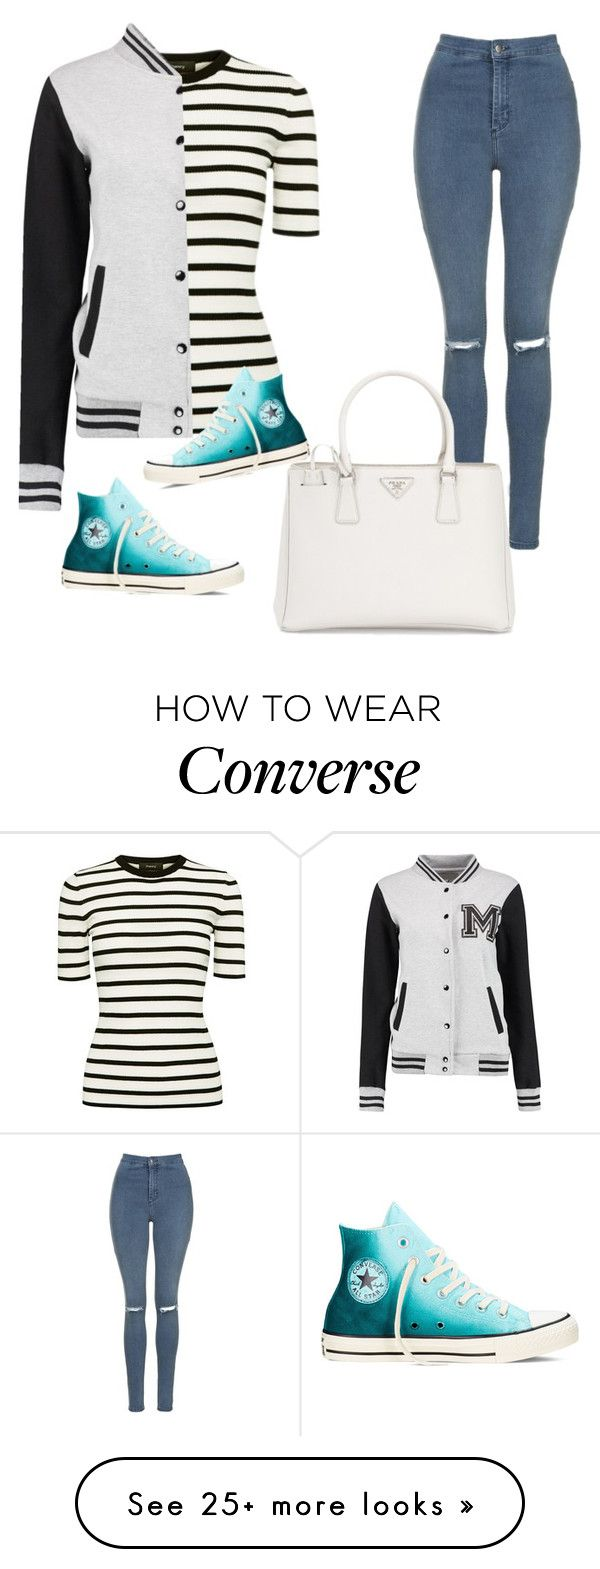 """Untitled #17"" by blackoutfitlover on Polyvore featuring Theory, Topshop, Prada and Converse"